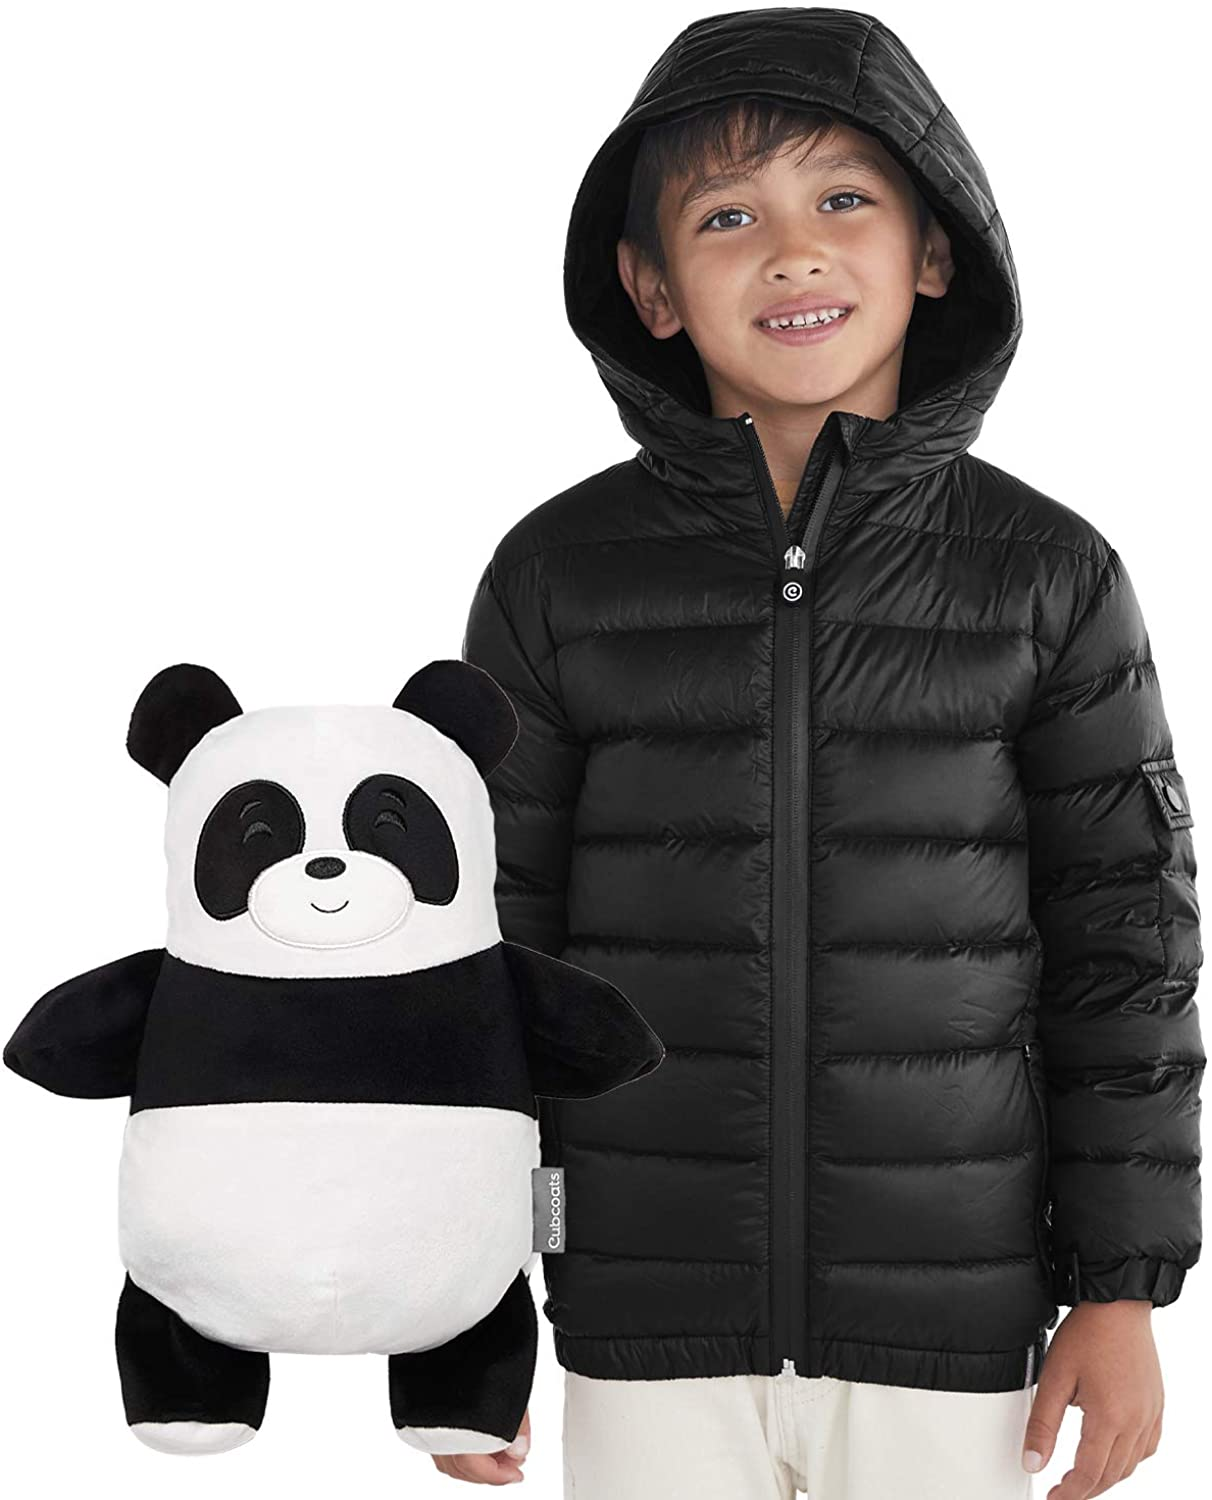 cubcoats-papo-the-panda-transforming-down-jacket